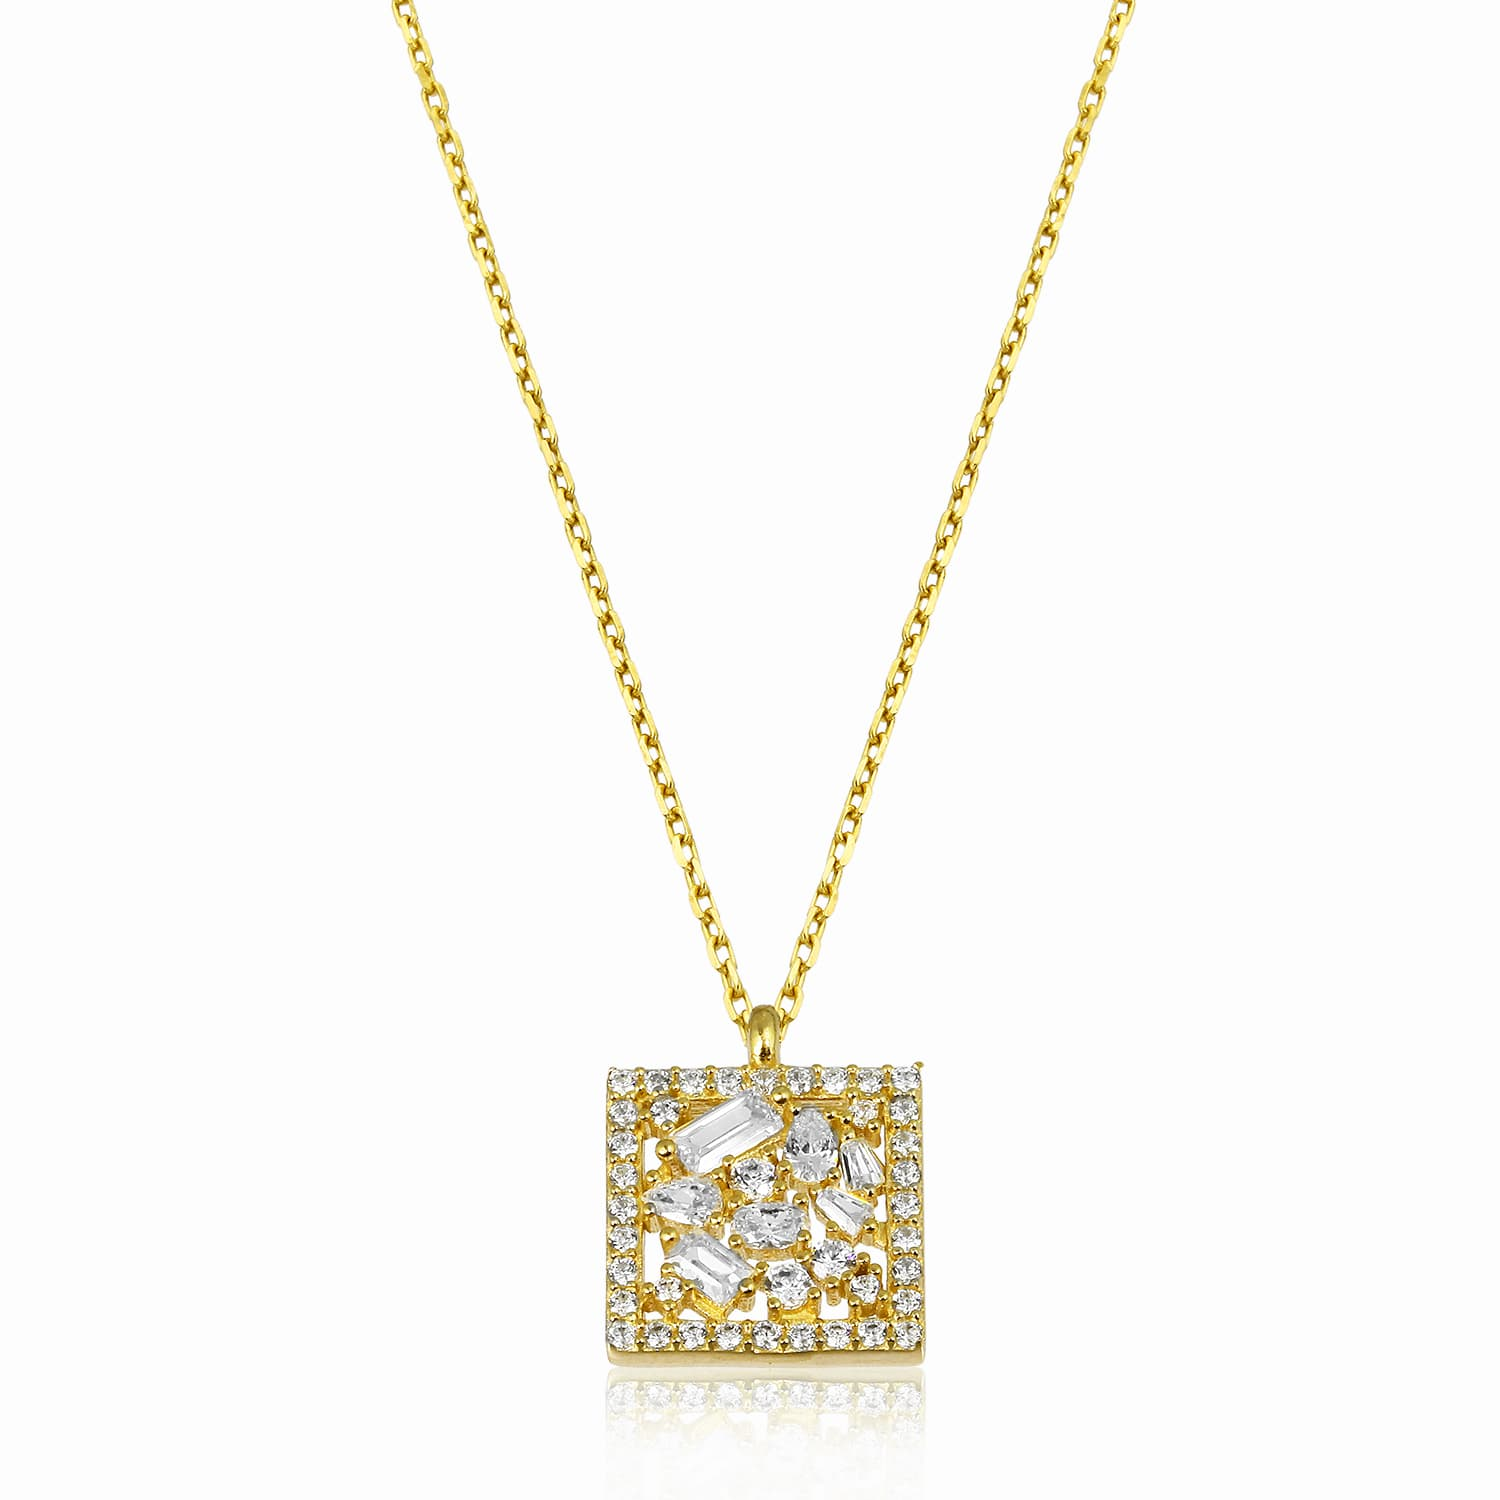 SQUARE BAGET NECKLACE